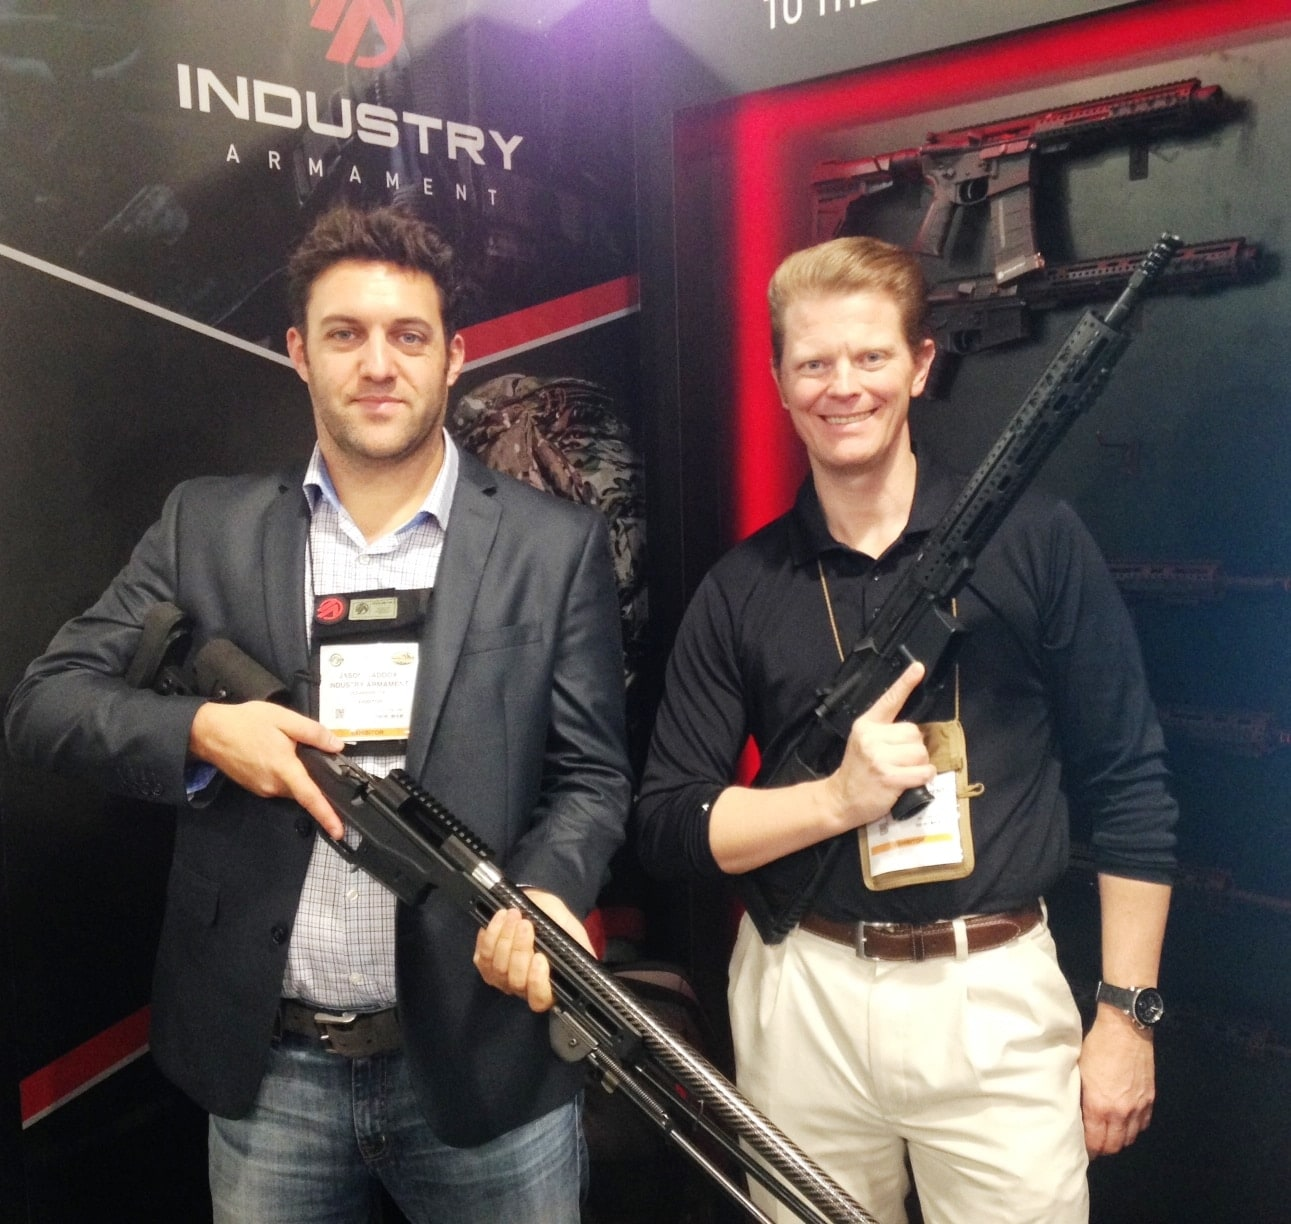 Jamie (L) and Bryce of Industry Armament with .308 and AR15. (Photo: Team HB)